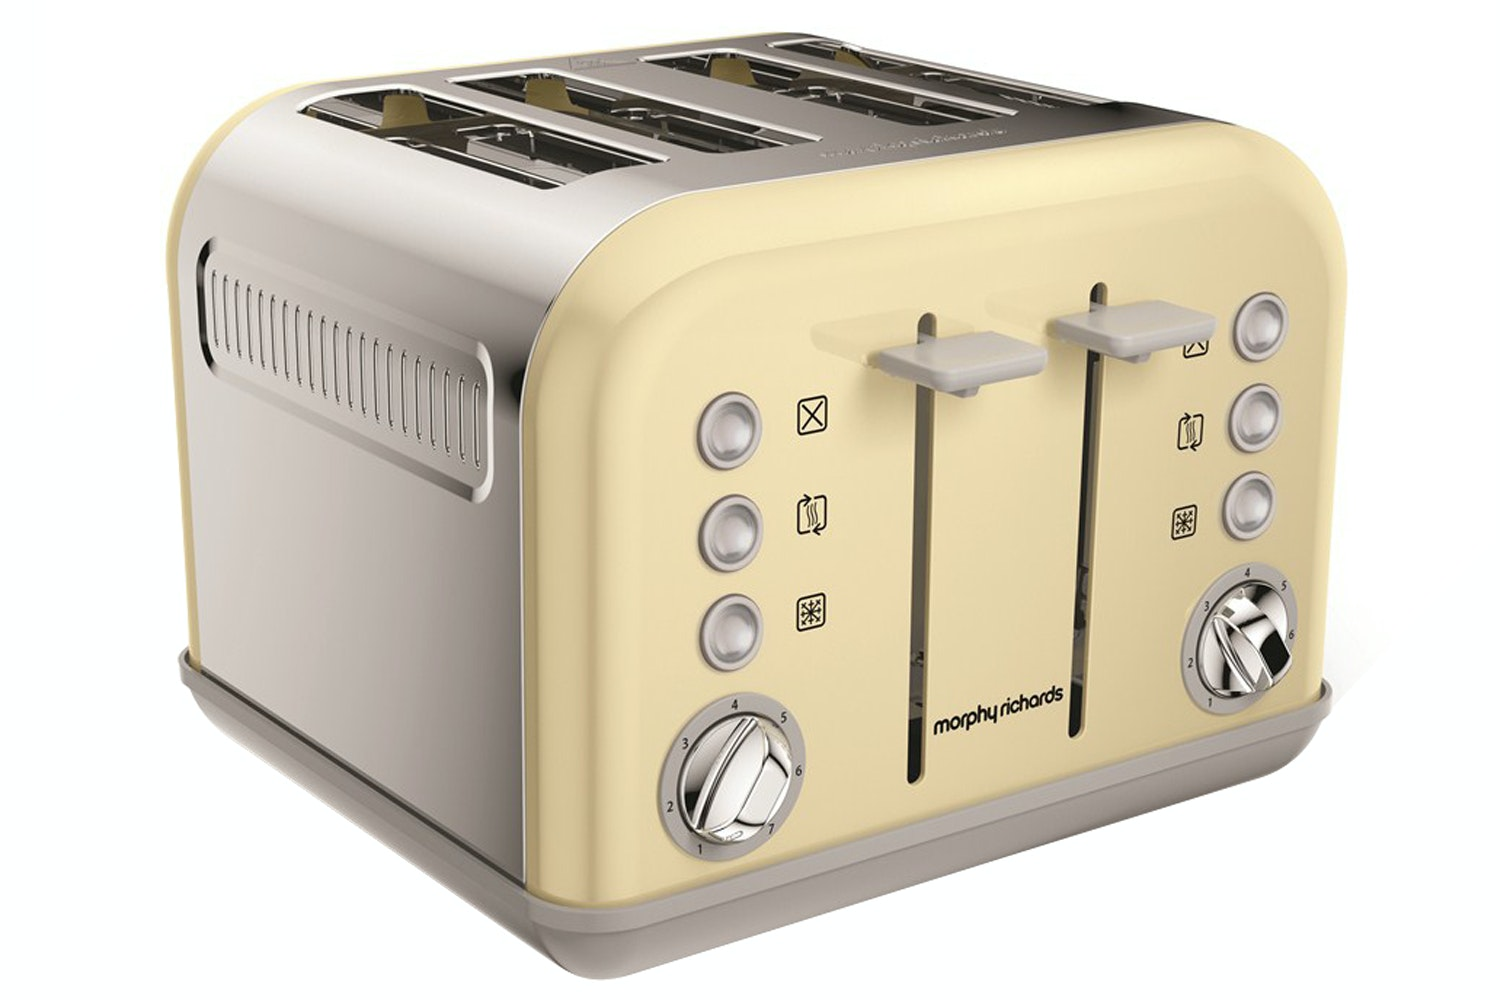 Morphy Richards 'Accents' 4 Slice Toaster | 242033 | Cream